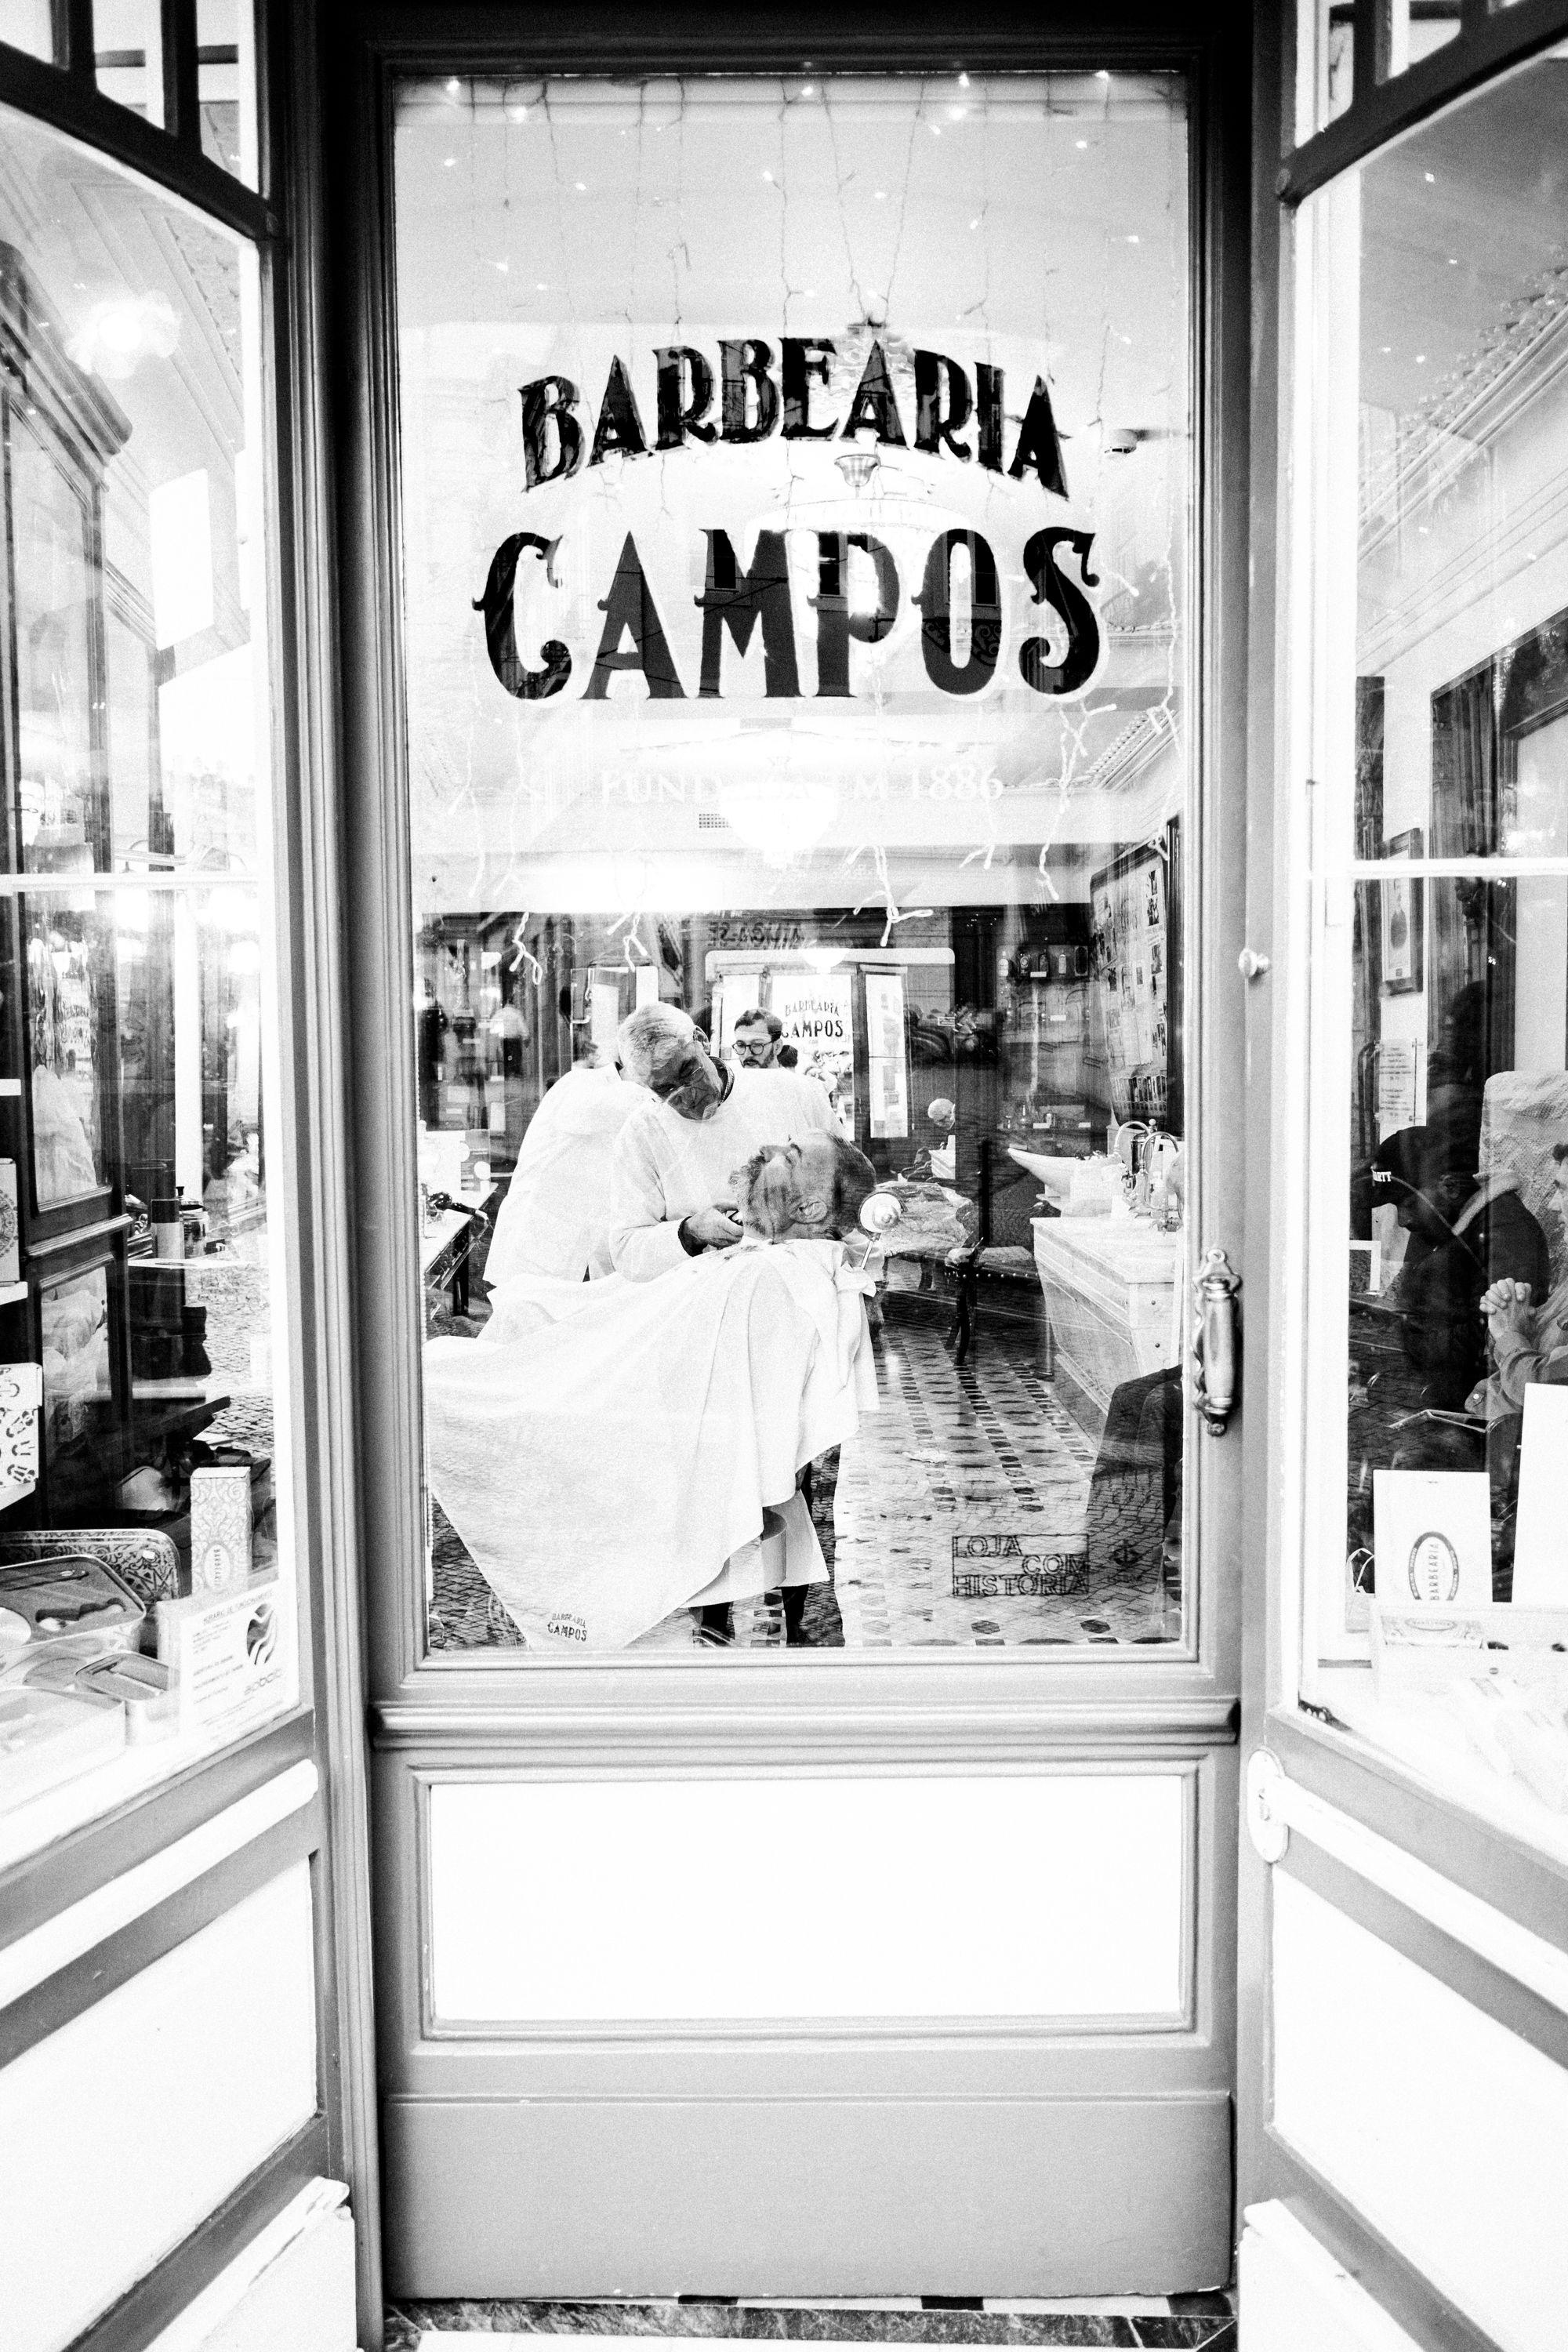 If you're ever in Lisbon and need a haircut or get your beard trimmed go to Barbearia Campos.  Highly recommend!